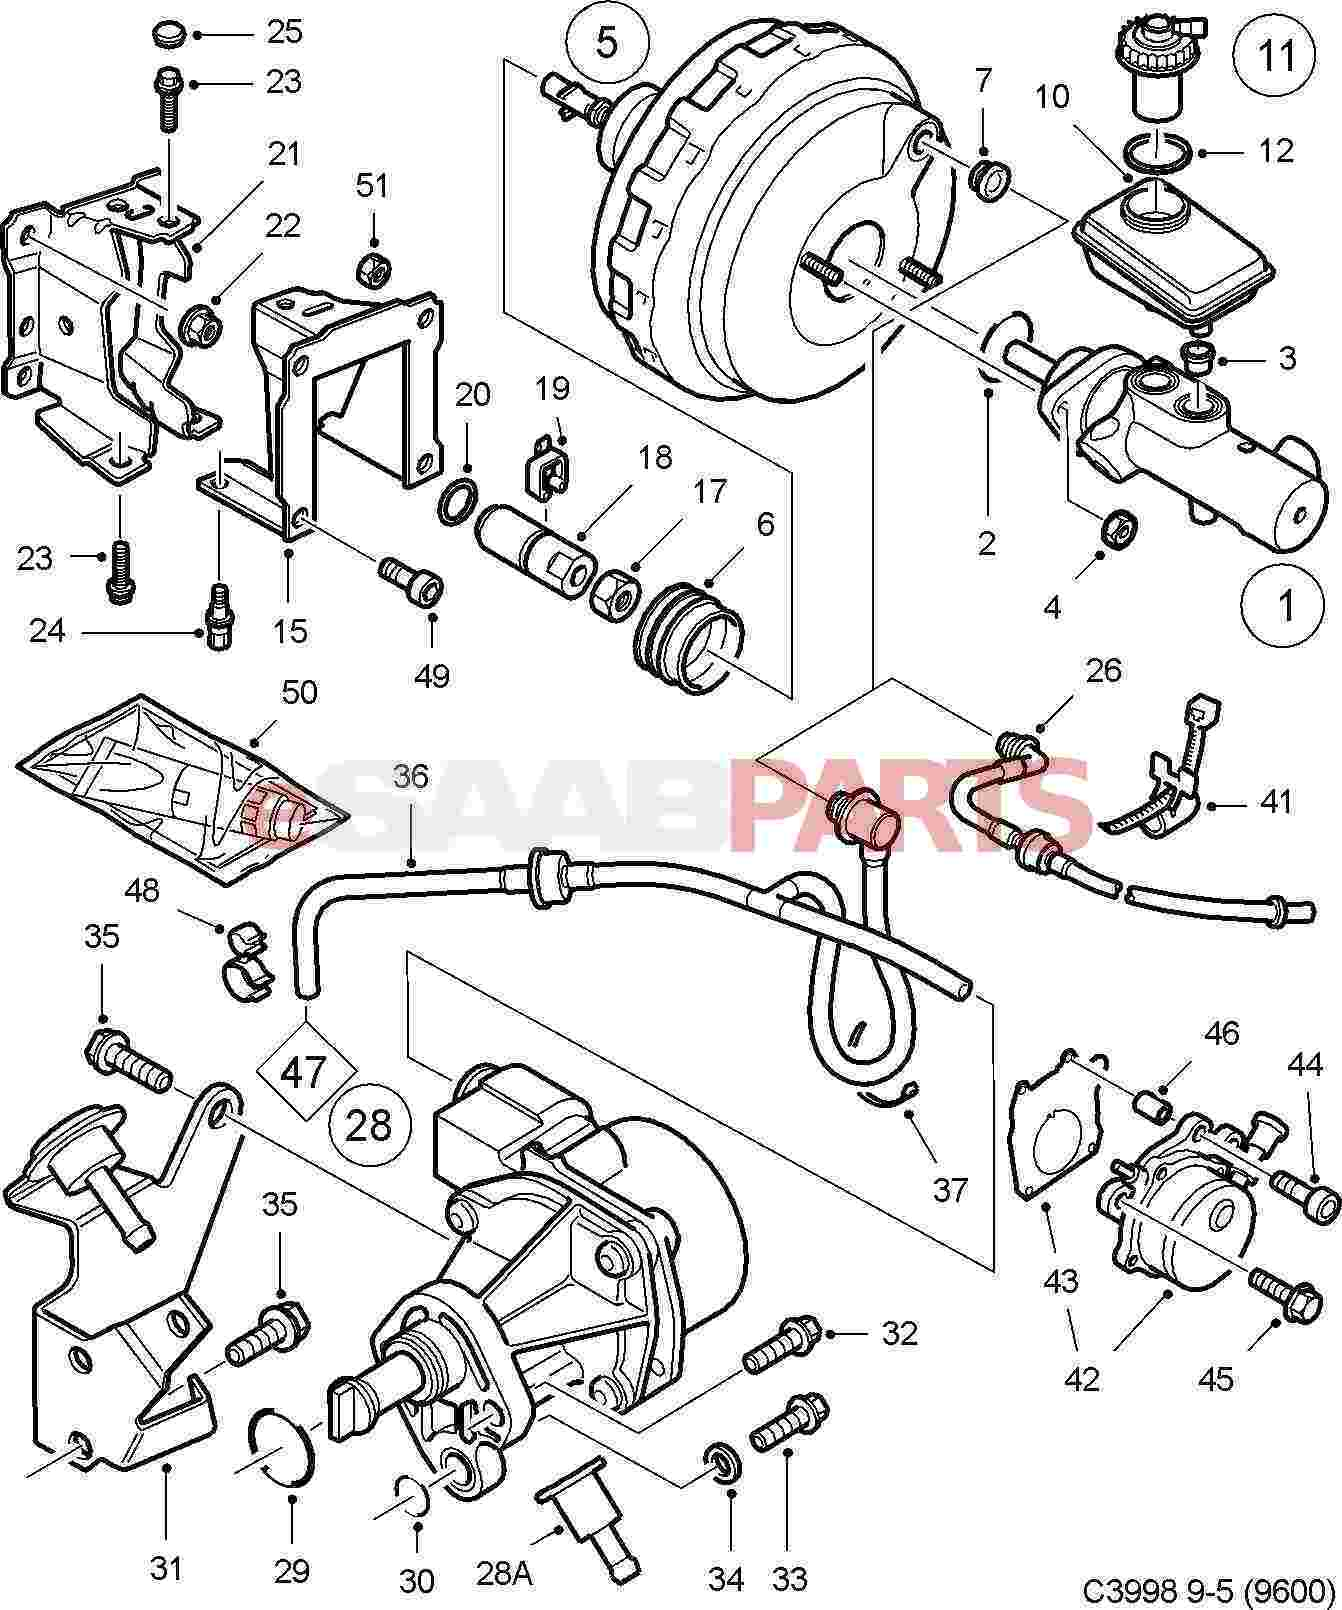 5390844] saab brake booster servo genuine saab parts fromSaab Brakes Diagram #12